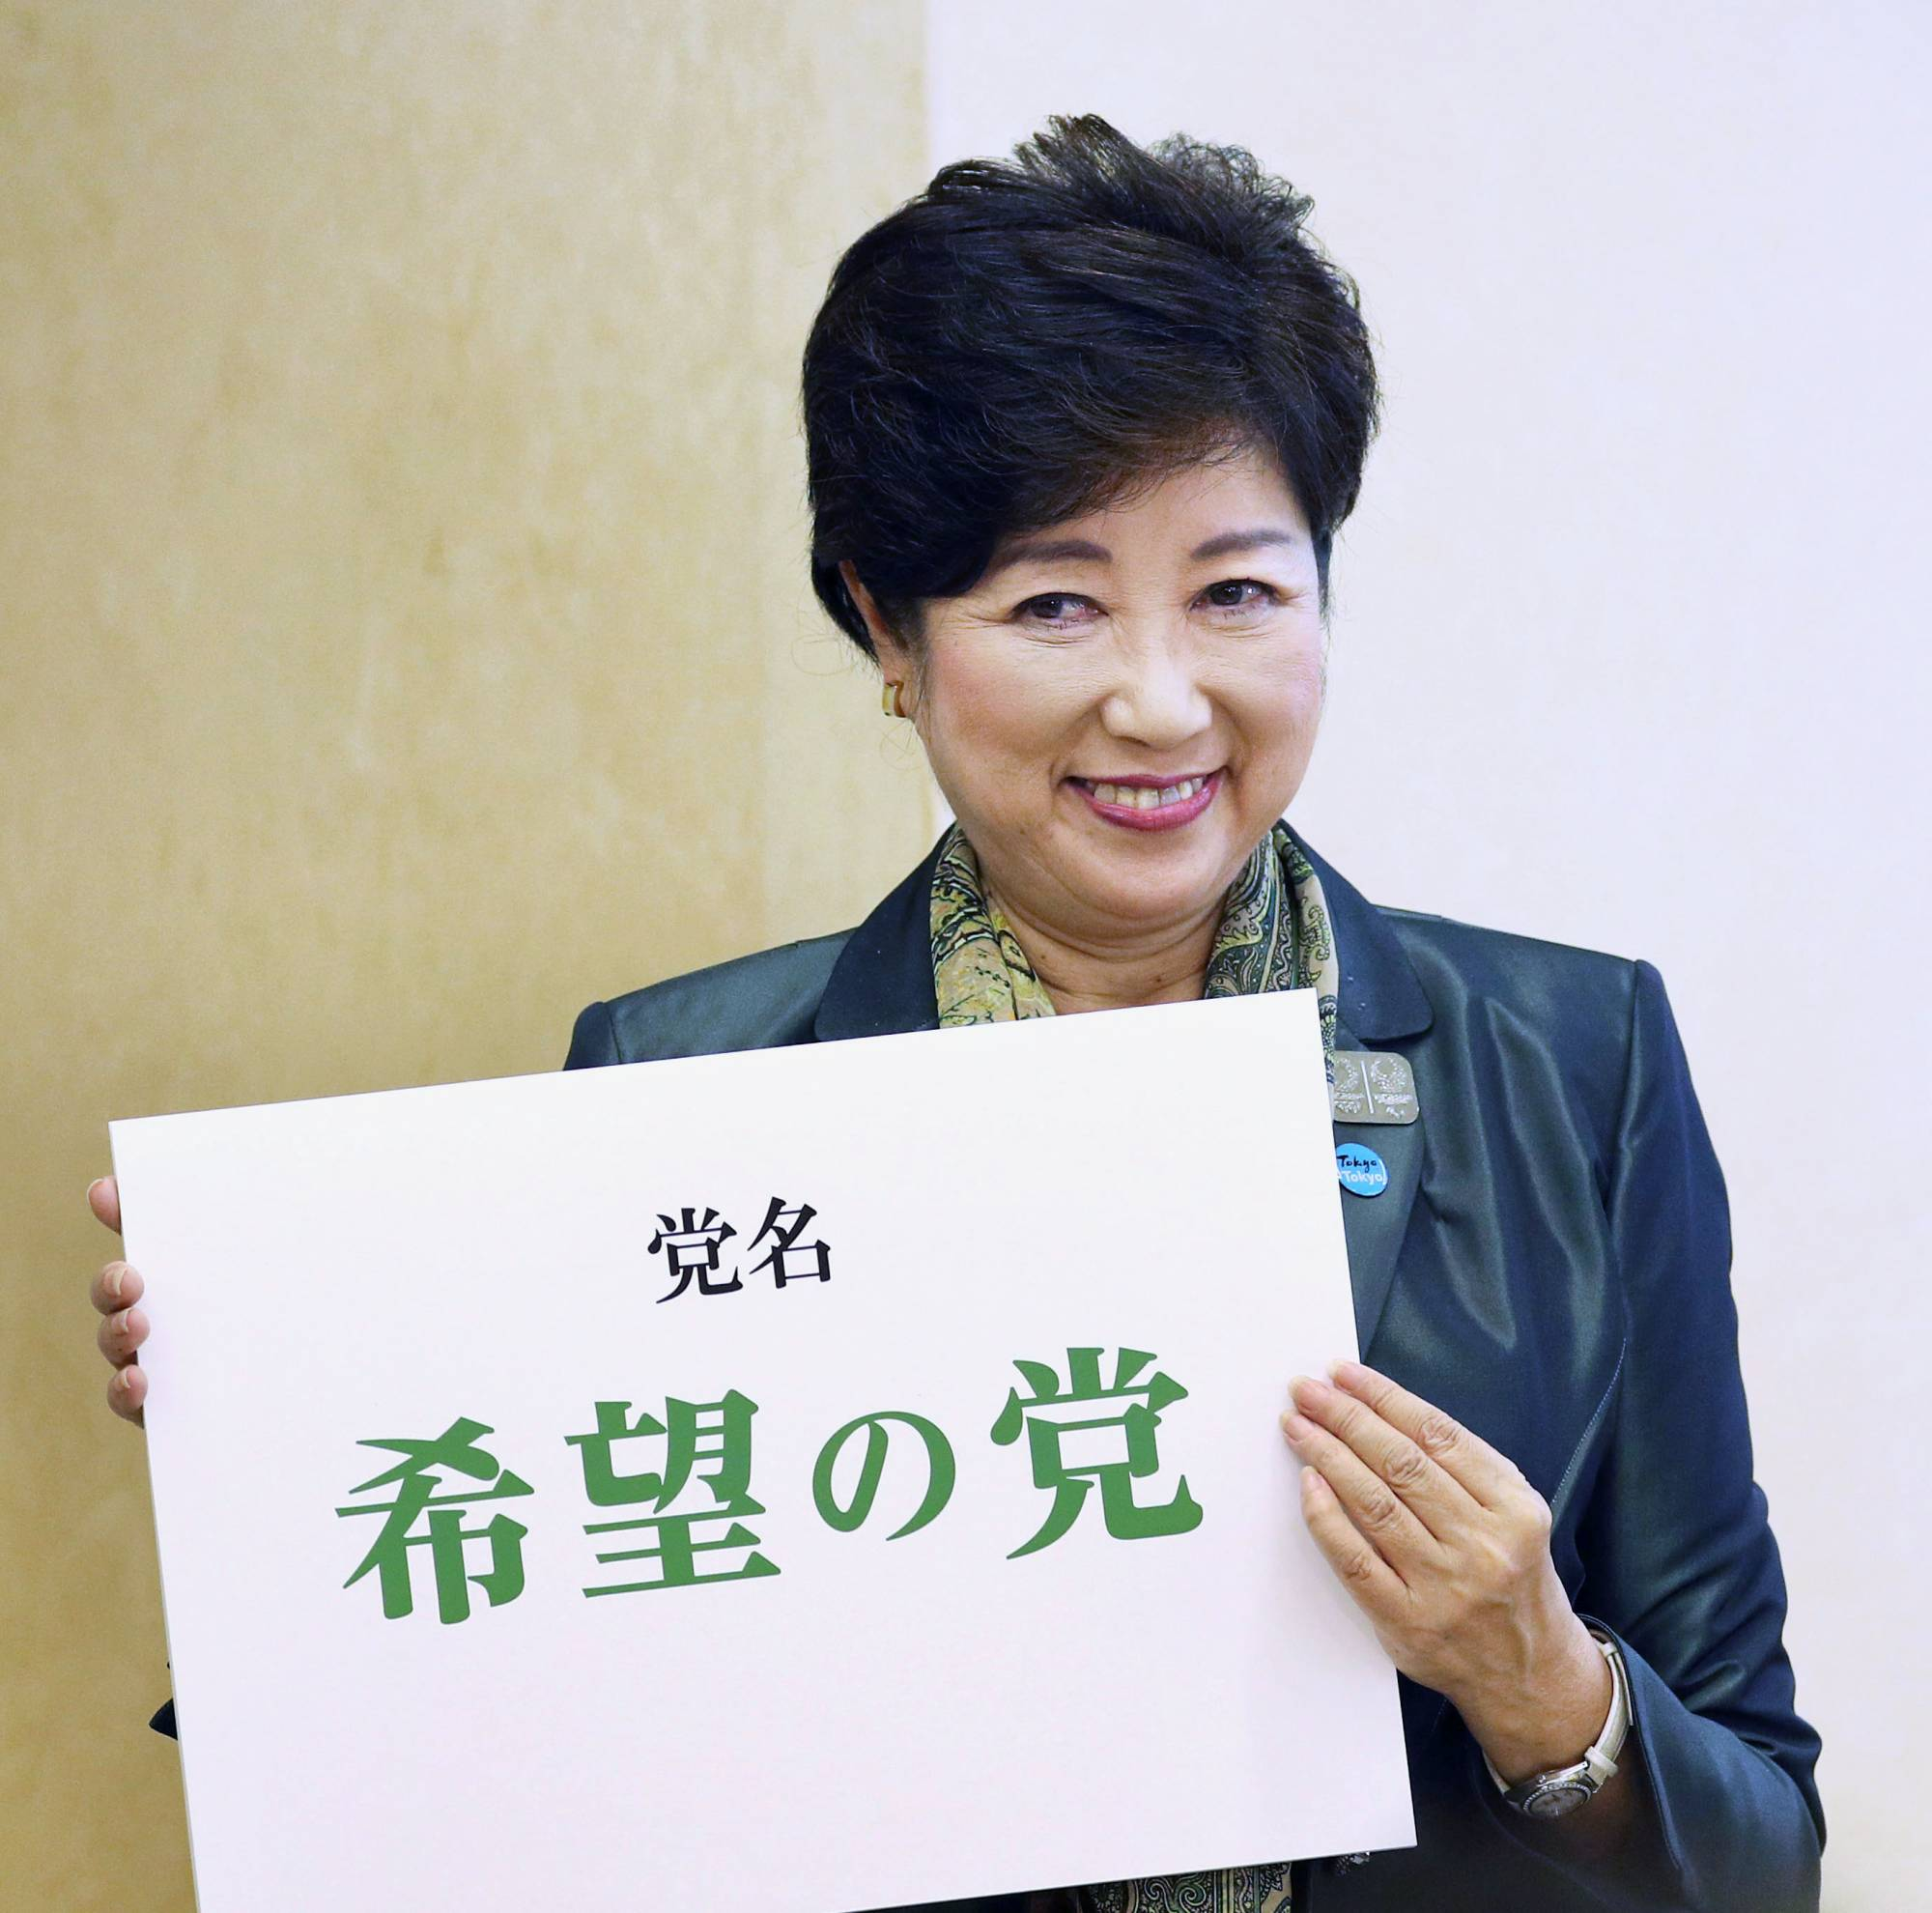 Tokyo Gov. Yuriko Koike holds a card bearing the name of her new national  political party, Kibo no To (Party of Hope), during a news conference in Tokyo on Sept. 25, 2017. | KYODO